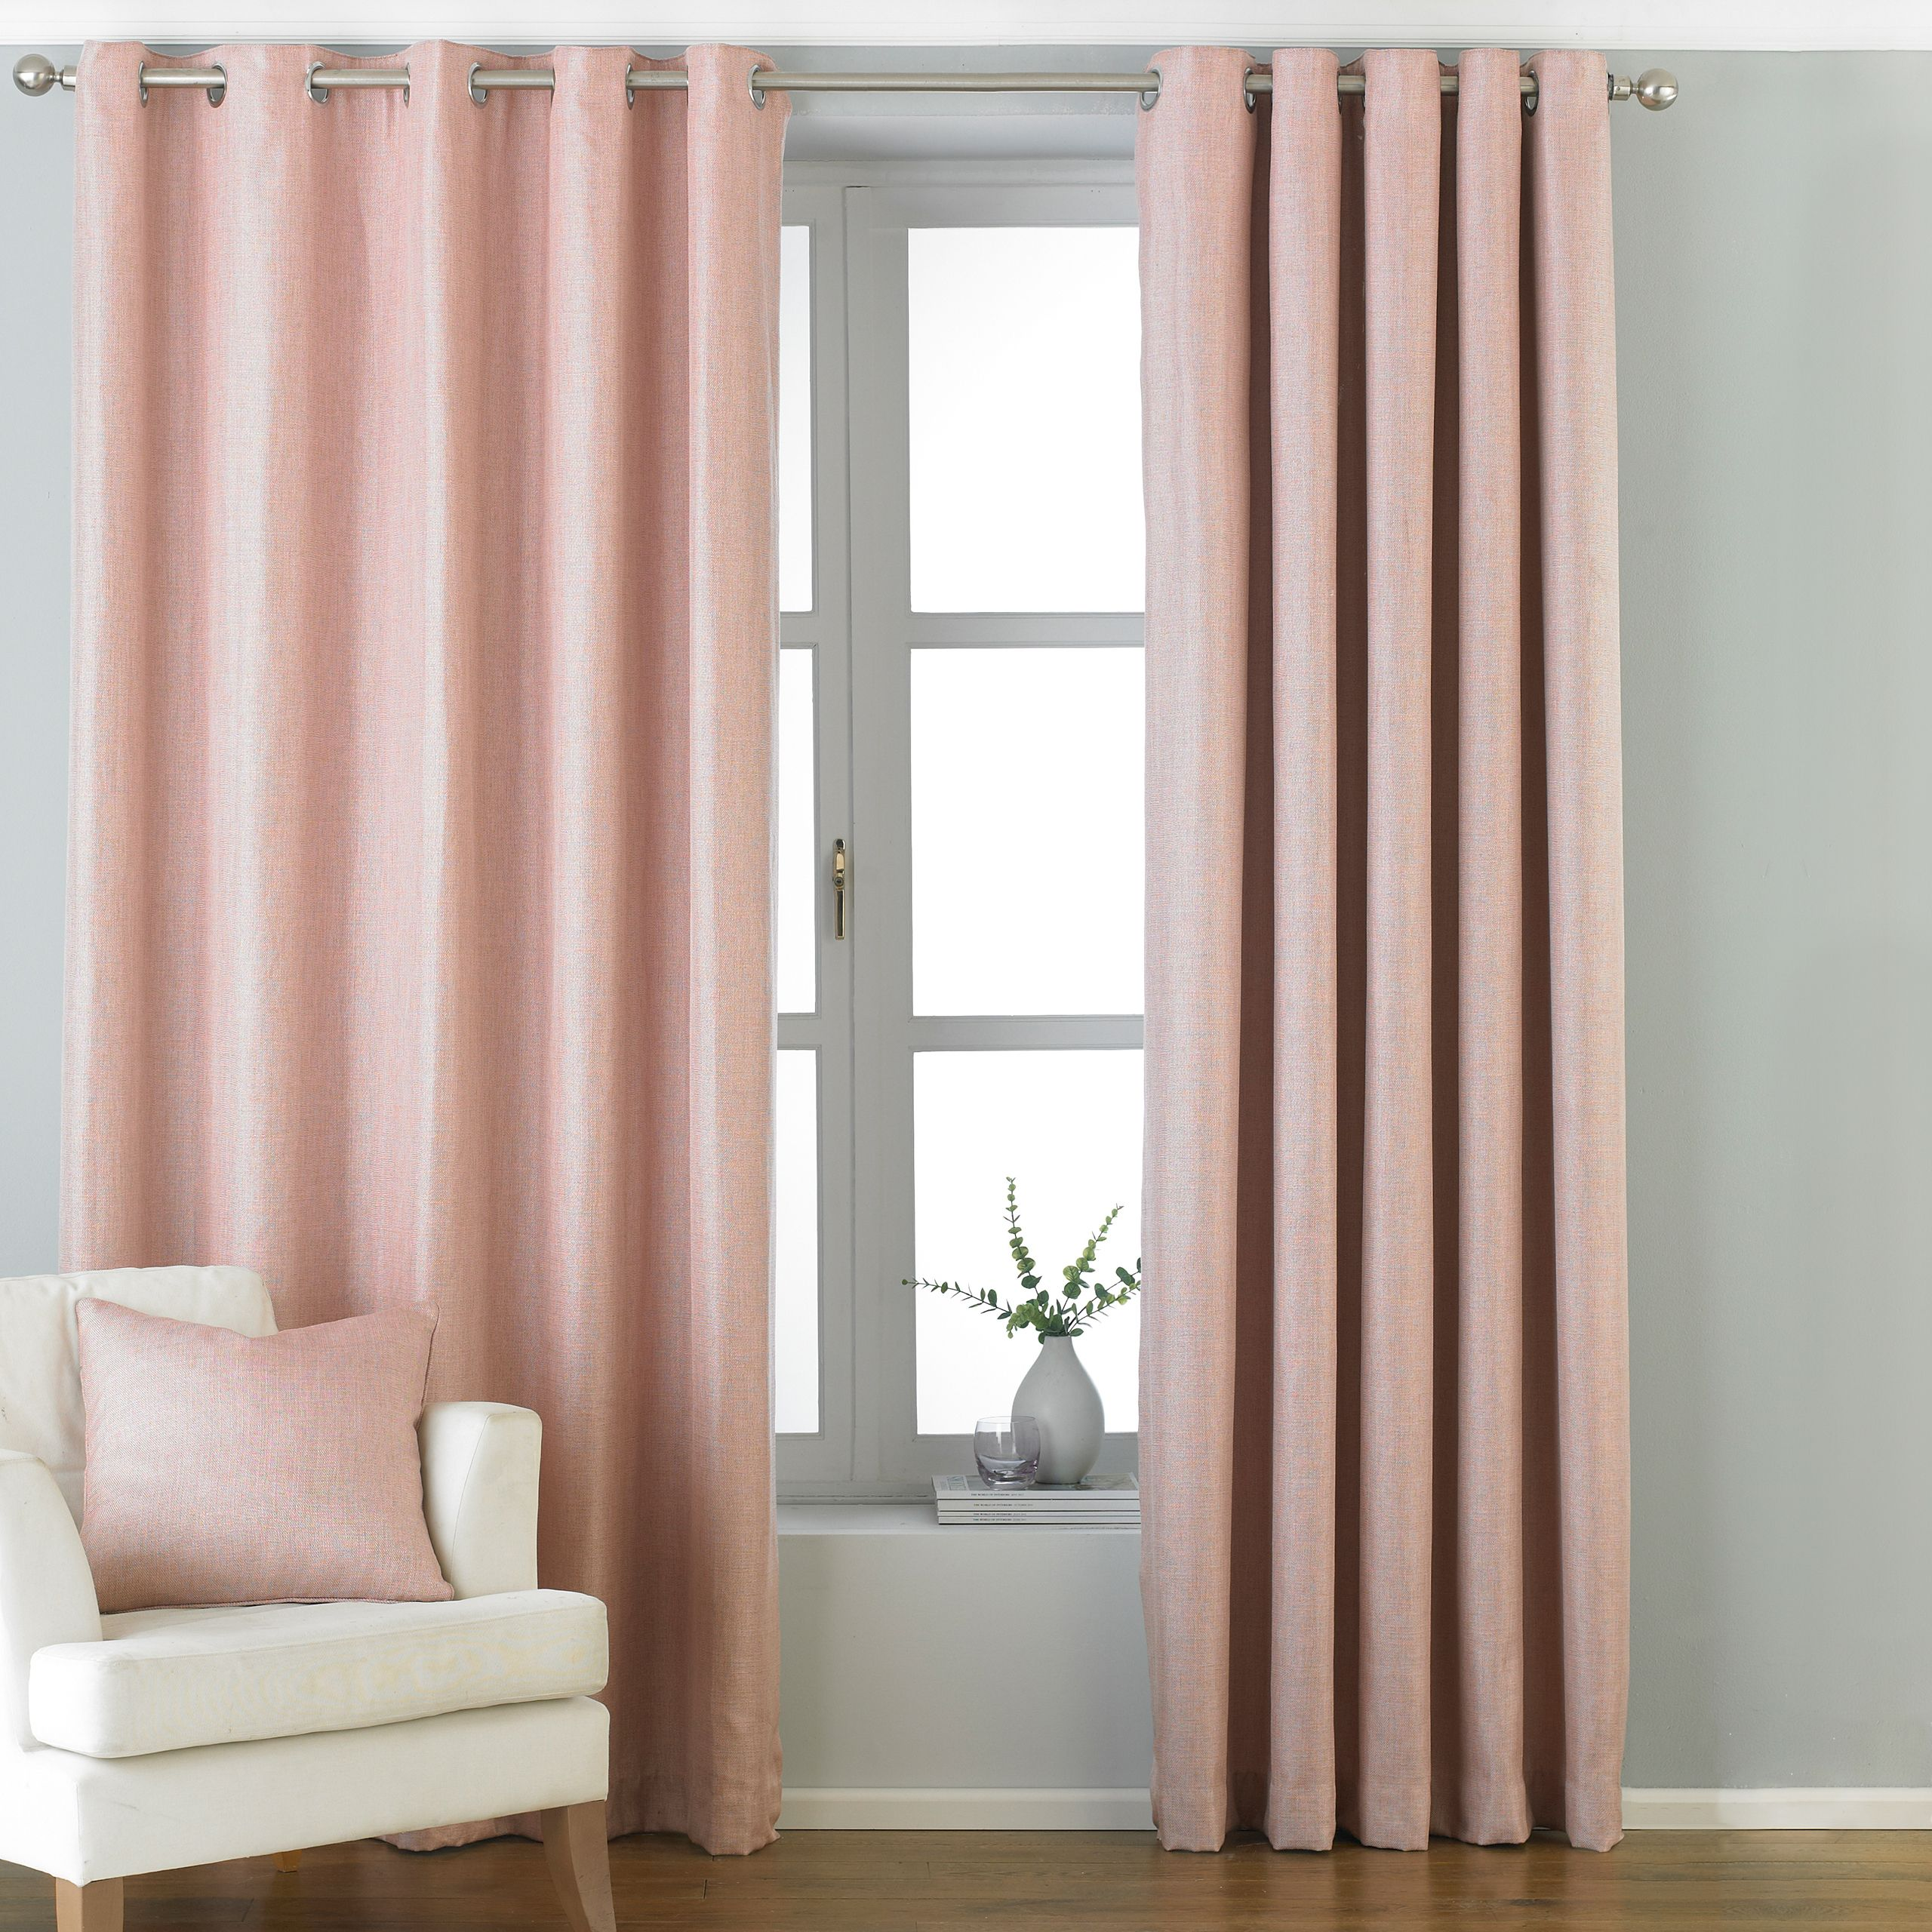 Atlantic Twill Woven Eyelet Curtains in Blush